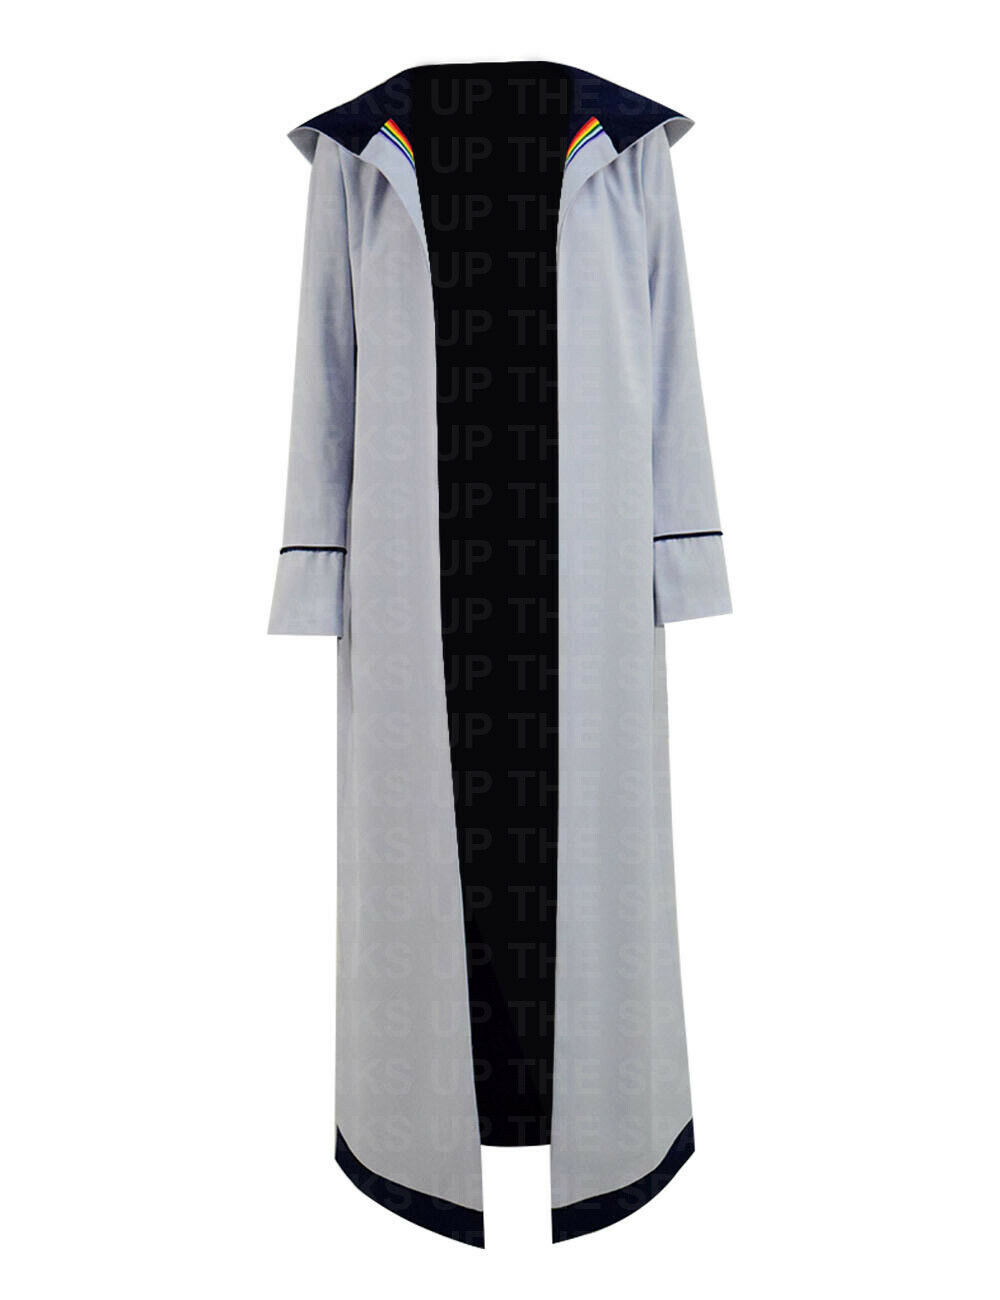 13th Doctor Who Stylish Jodie Whittaker BBC Costume Women Trench Coat - BIG SALE